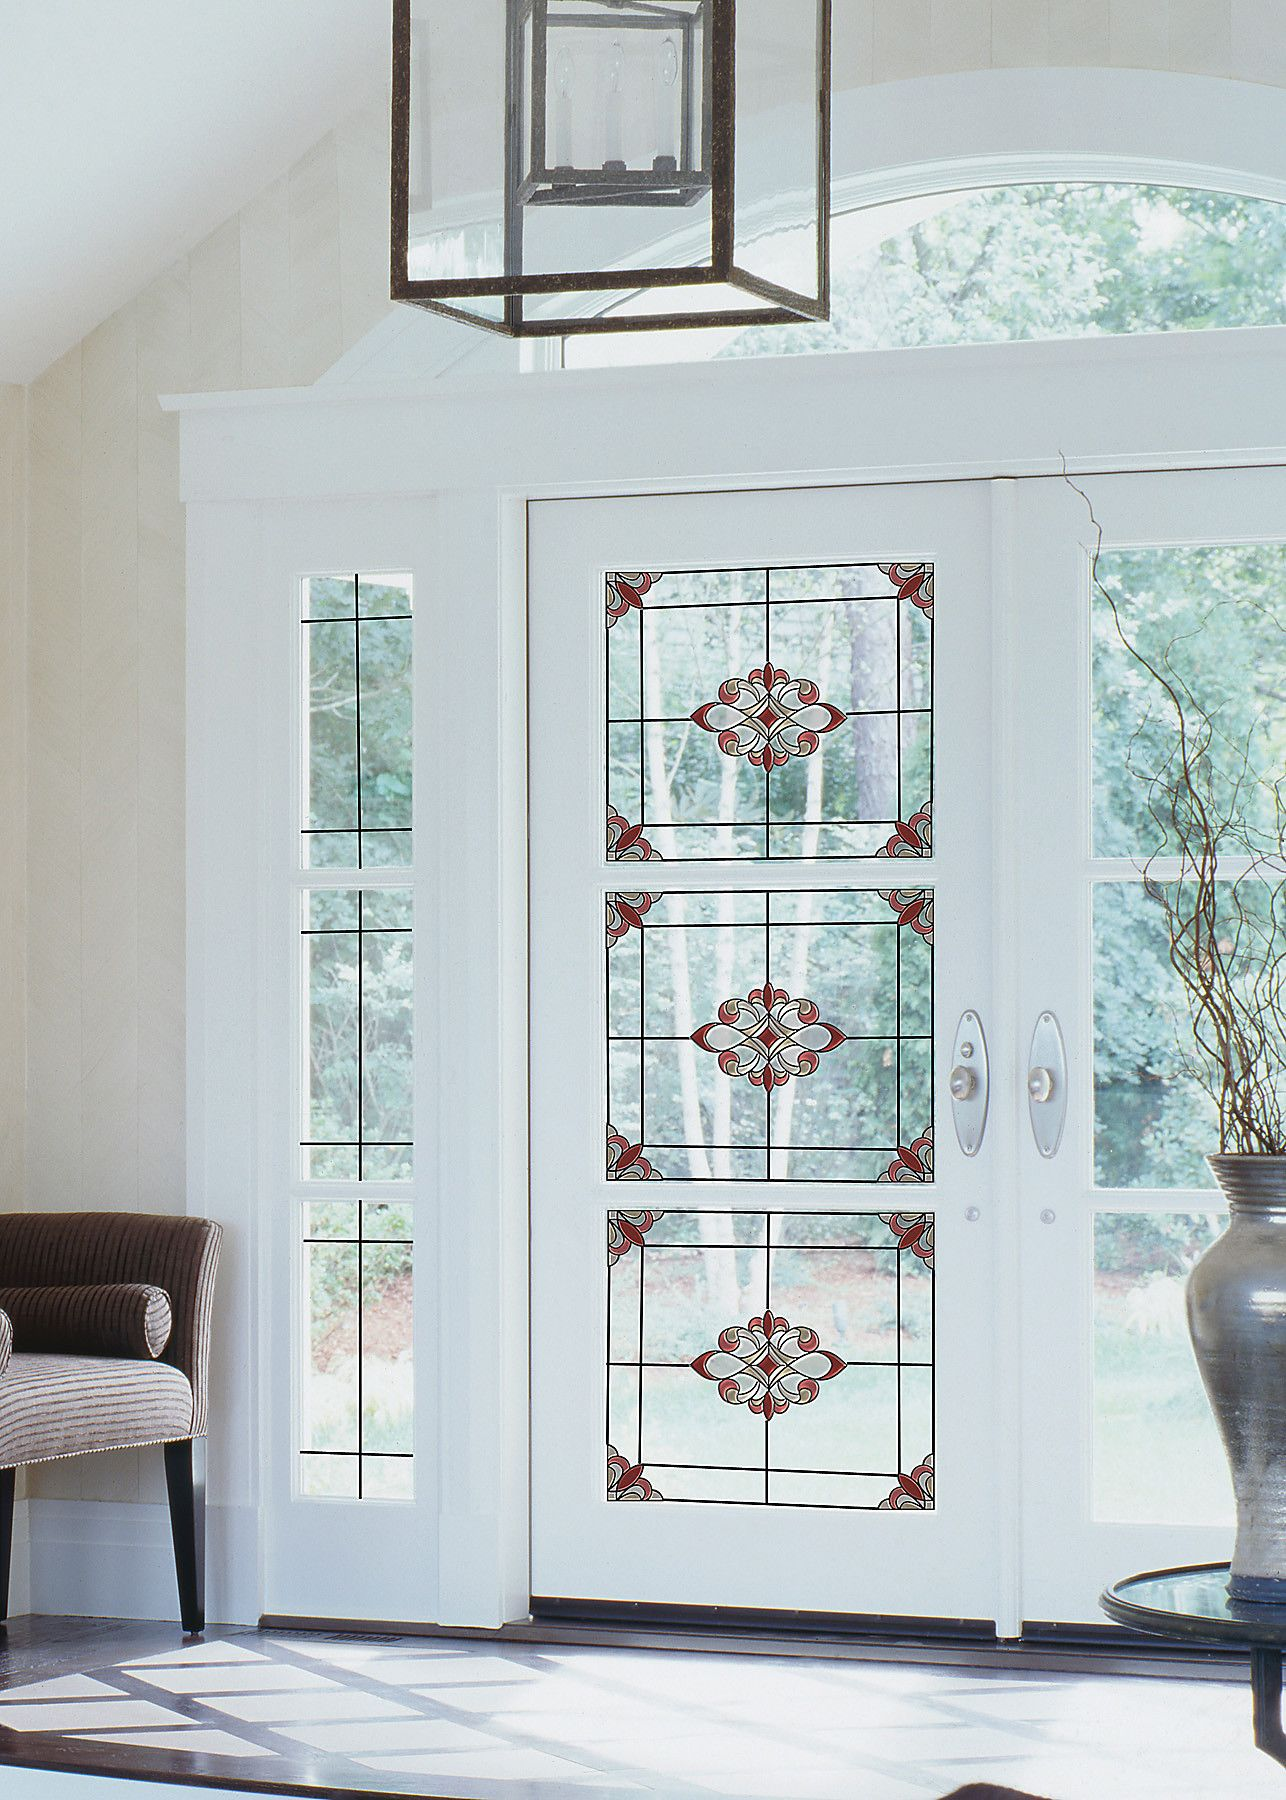 Brewster Home Fashions Peel And Stick Window Decor Westwood Decals Home Window Design Design